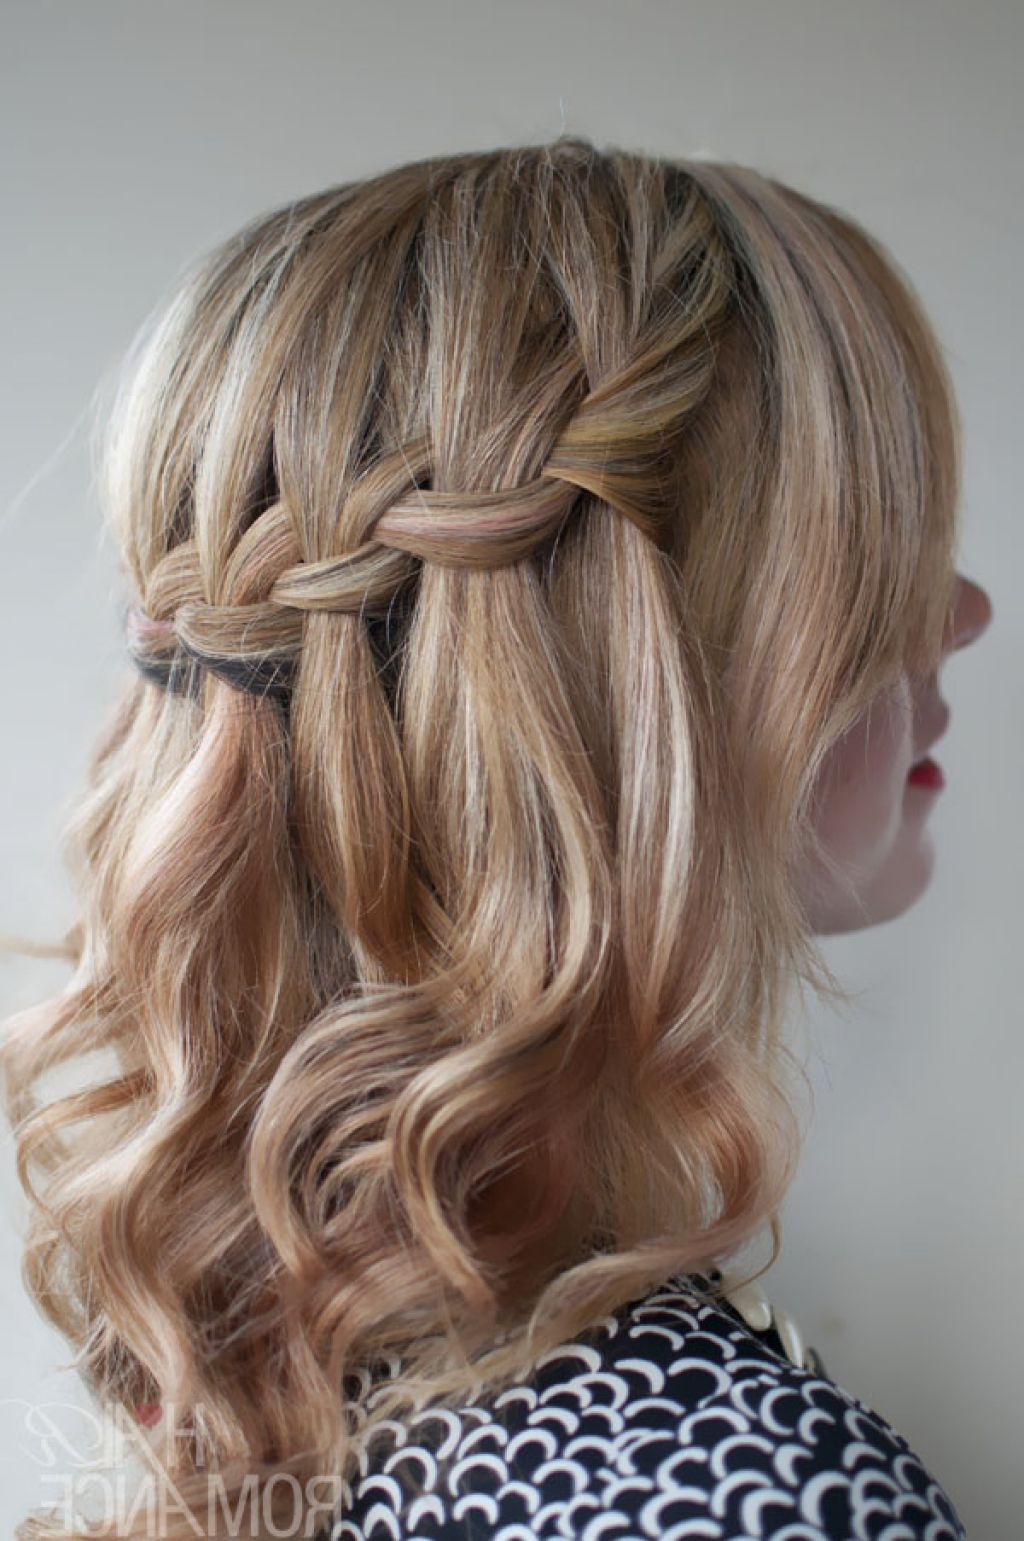 Hairstyles Curls And Braids